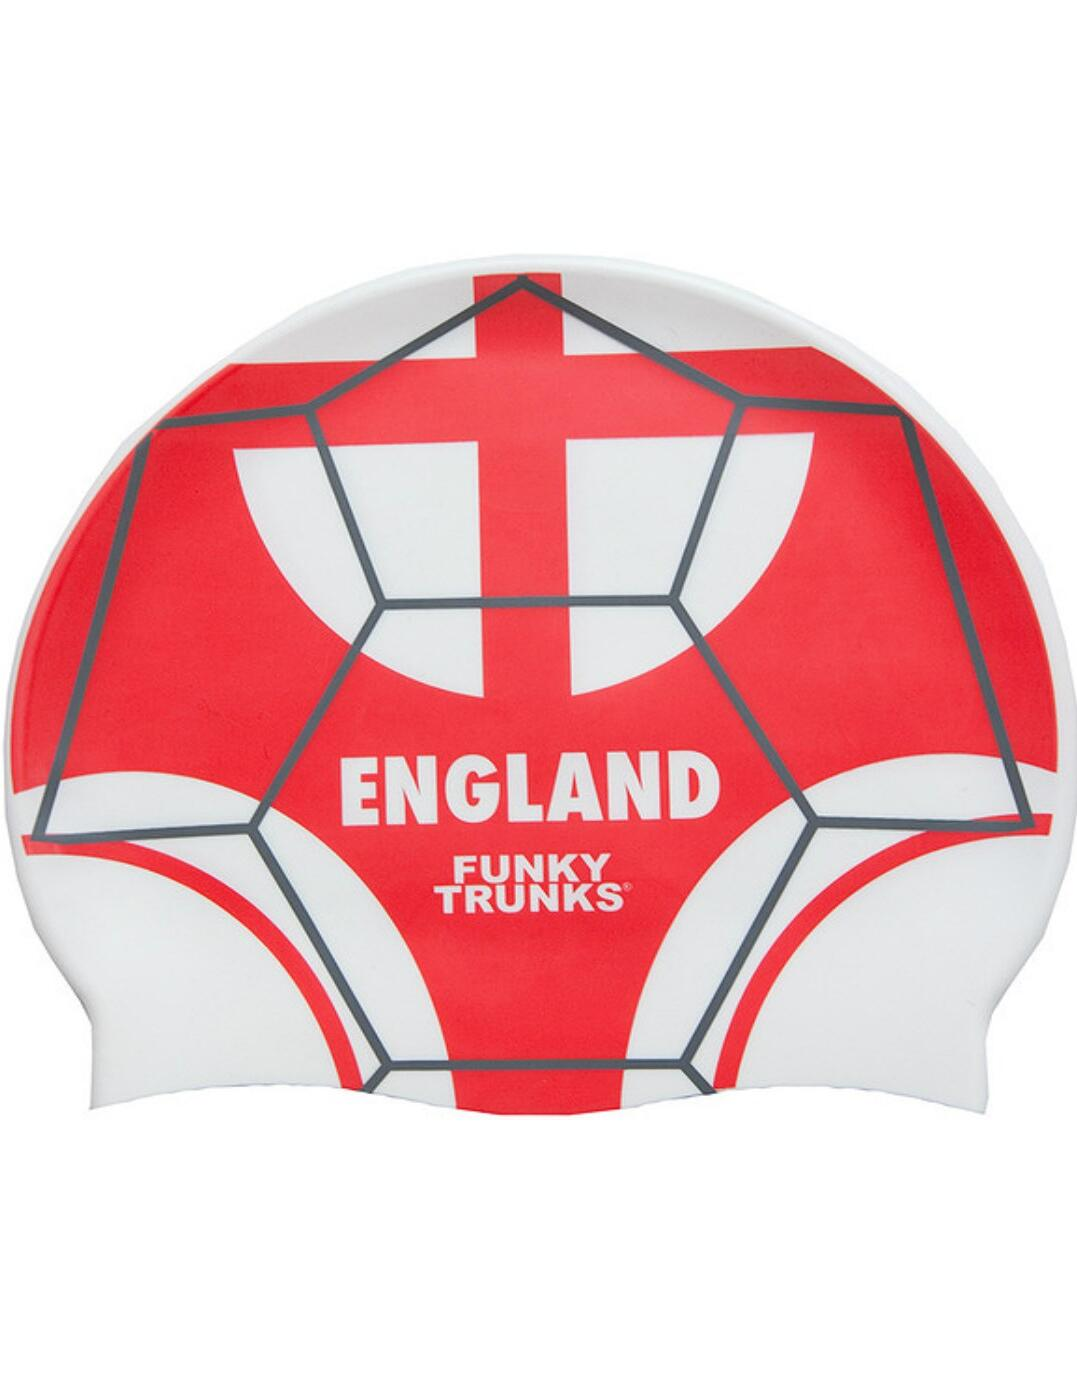 FT9900676 Funky Trunks Silicone Swimming Cap - FT9900676 Three Lions